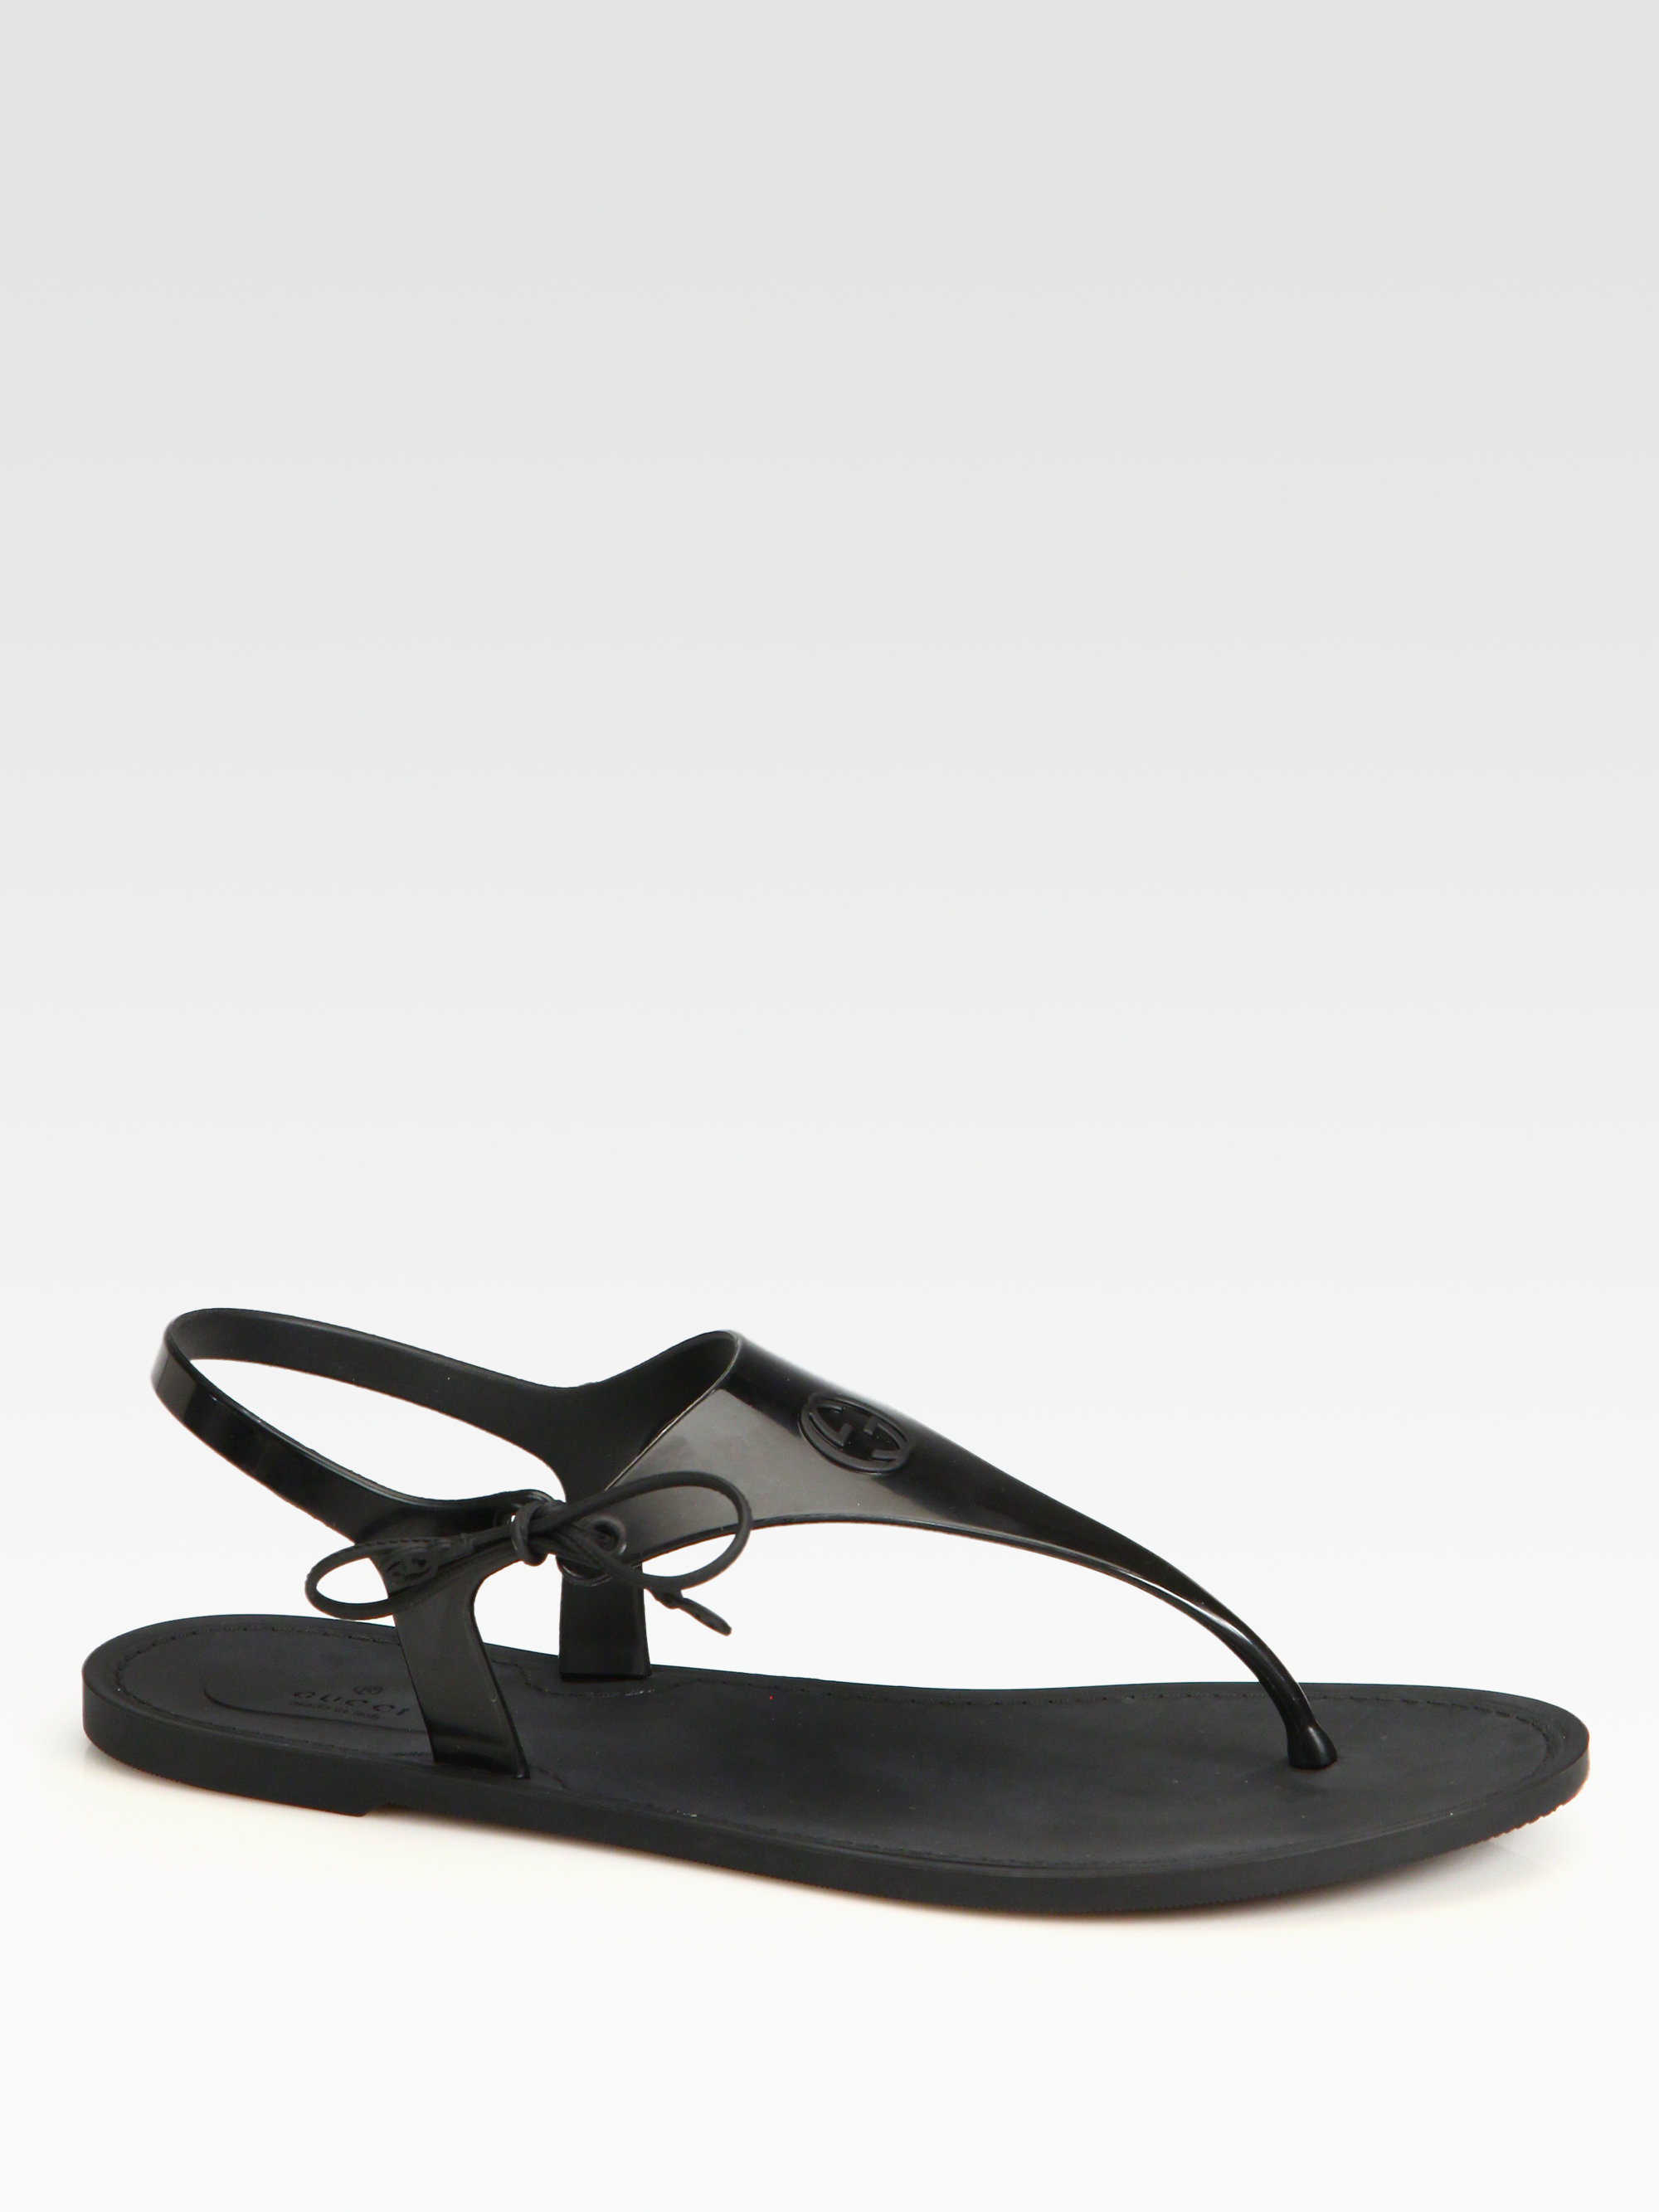 1f99d0e53 Gucci Katina Rubber Thong Sandals in Black - Lyst